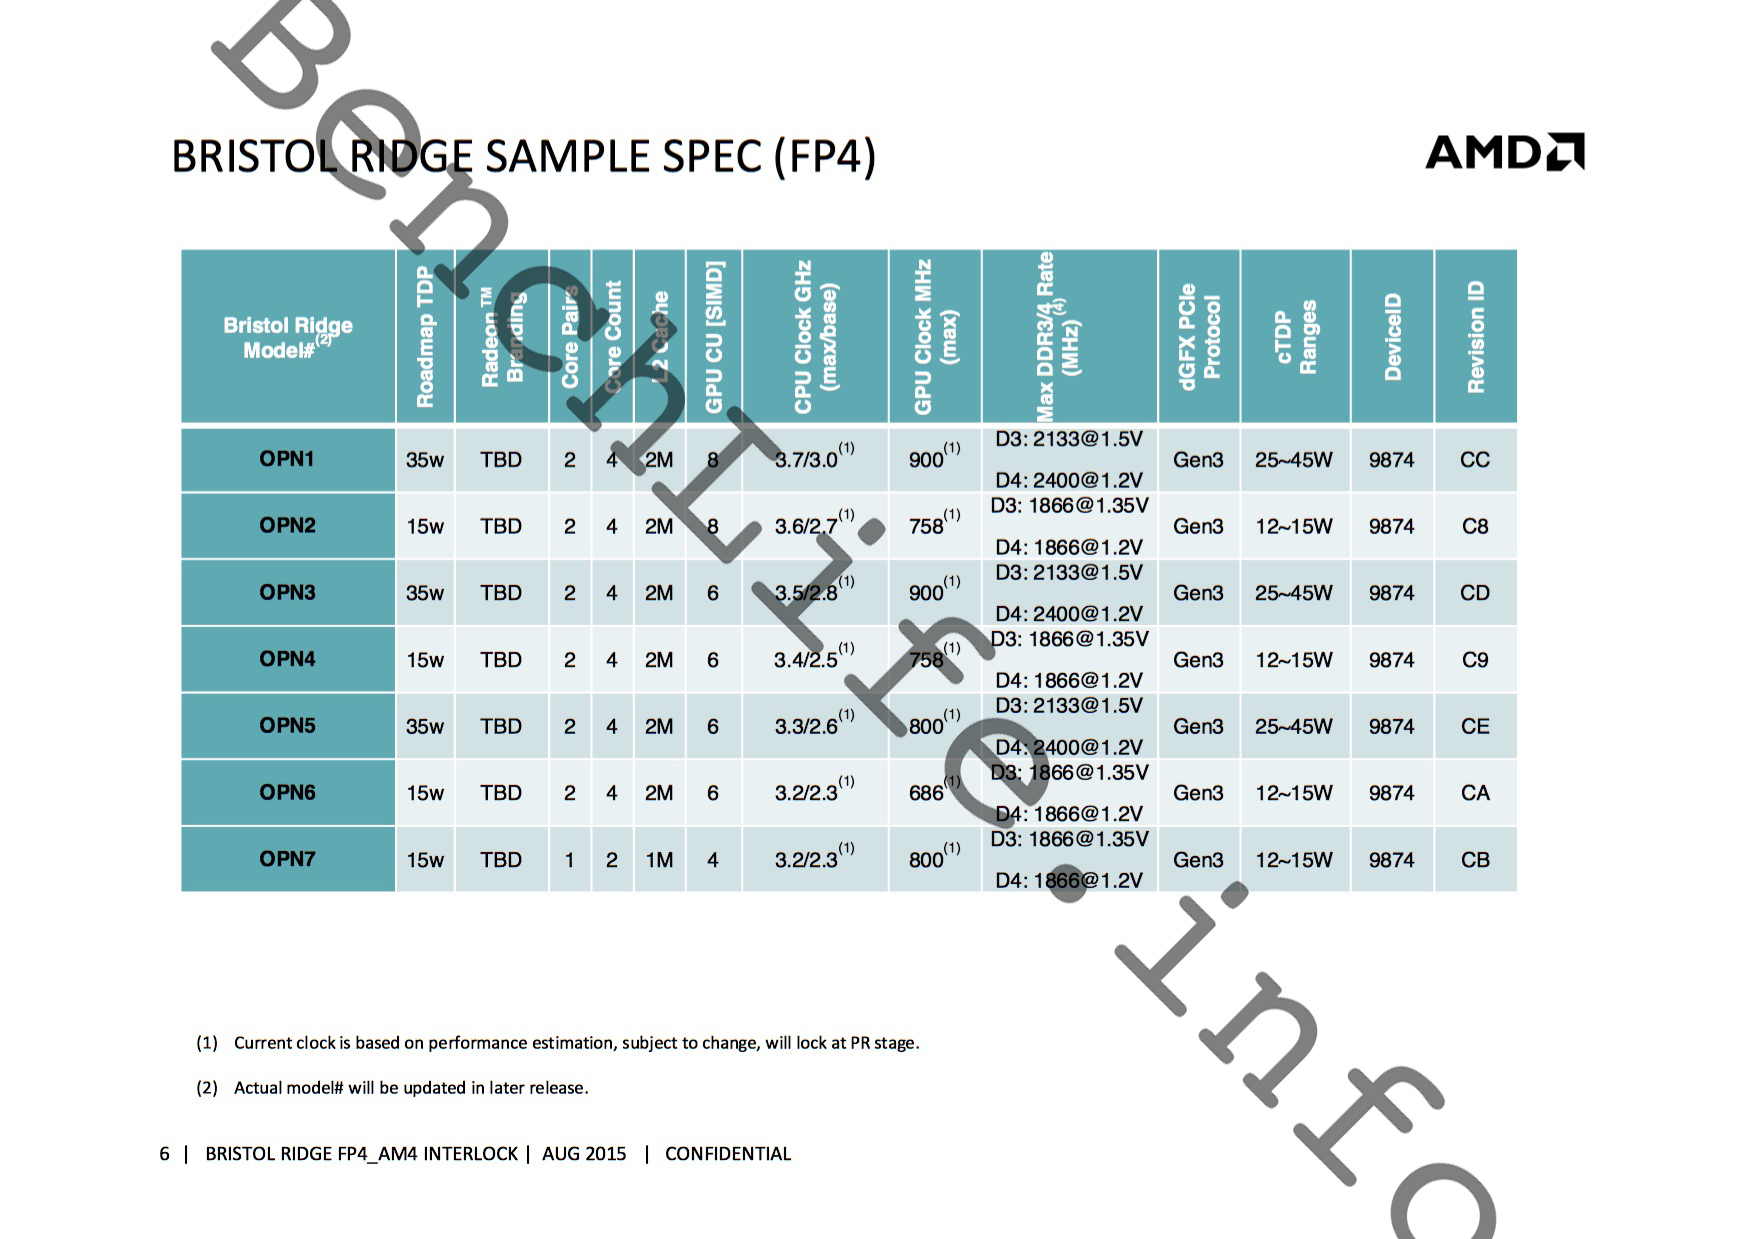 BRISTOL RIDGE SAMPLE SPEC (FP4)